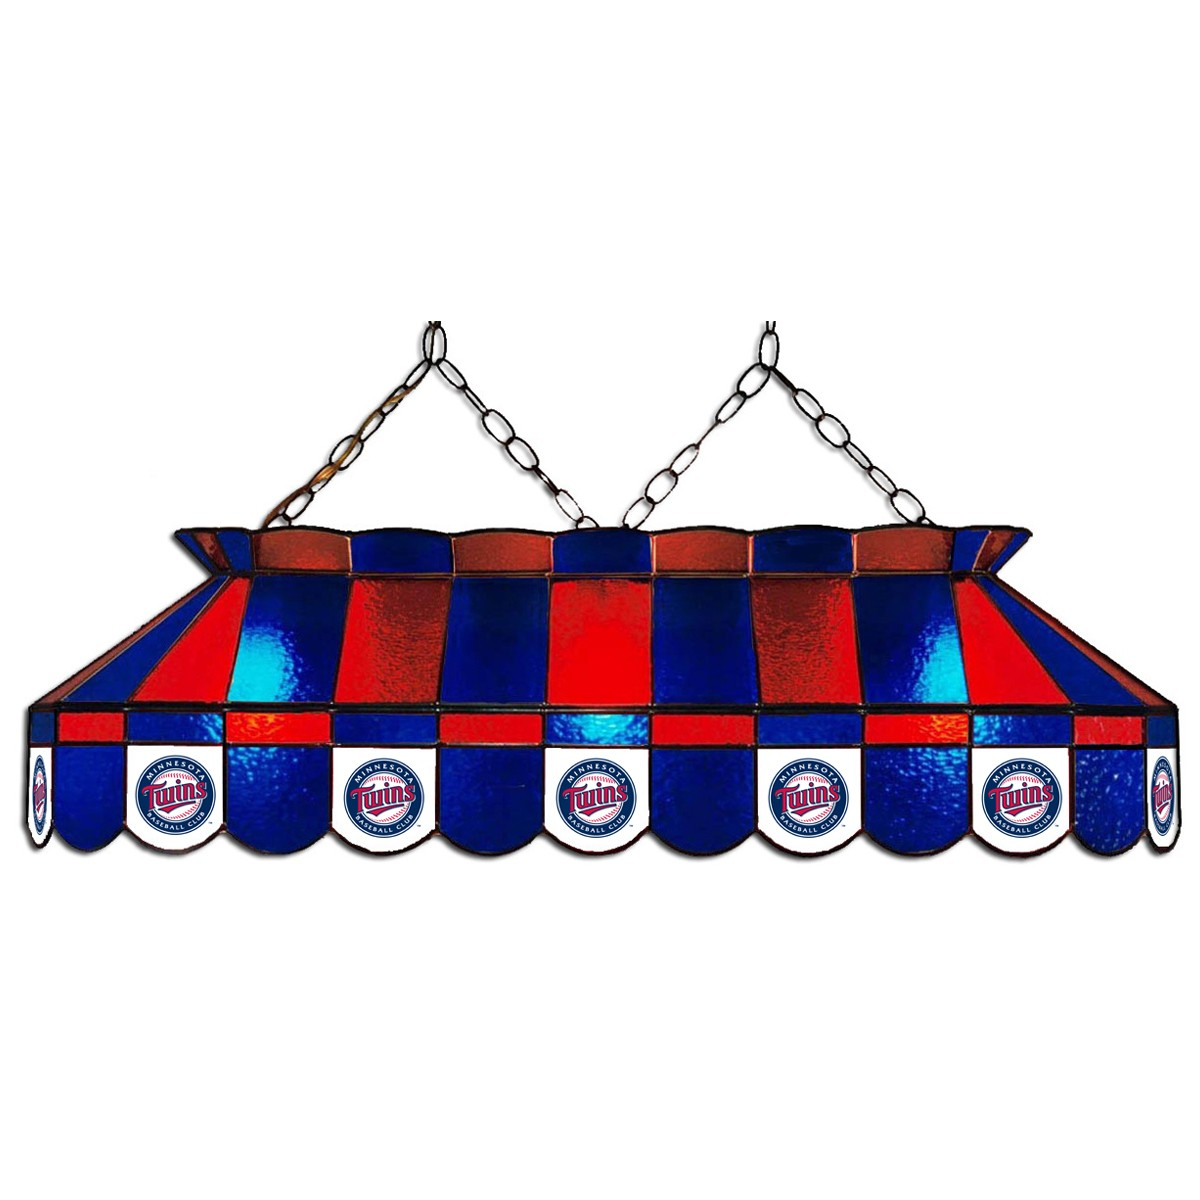 MINNESOTA TWINS 40-IN. STAINED GLASS POOL TABLE LAMP